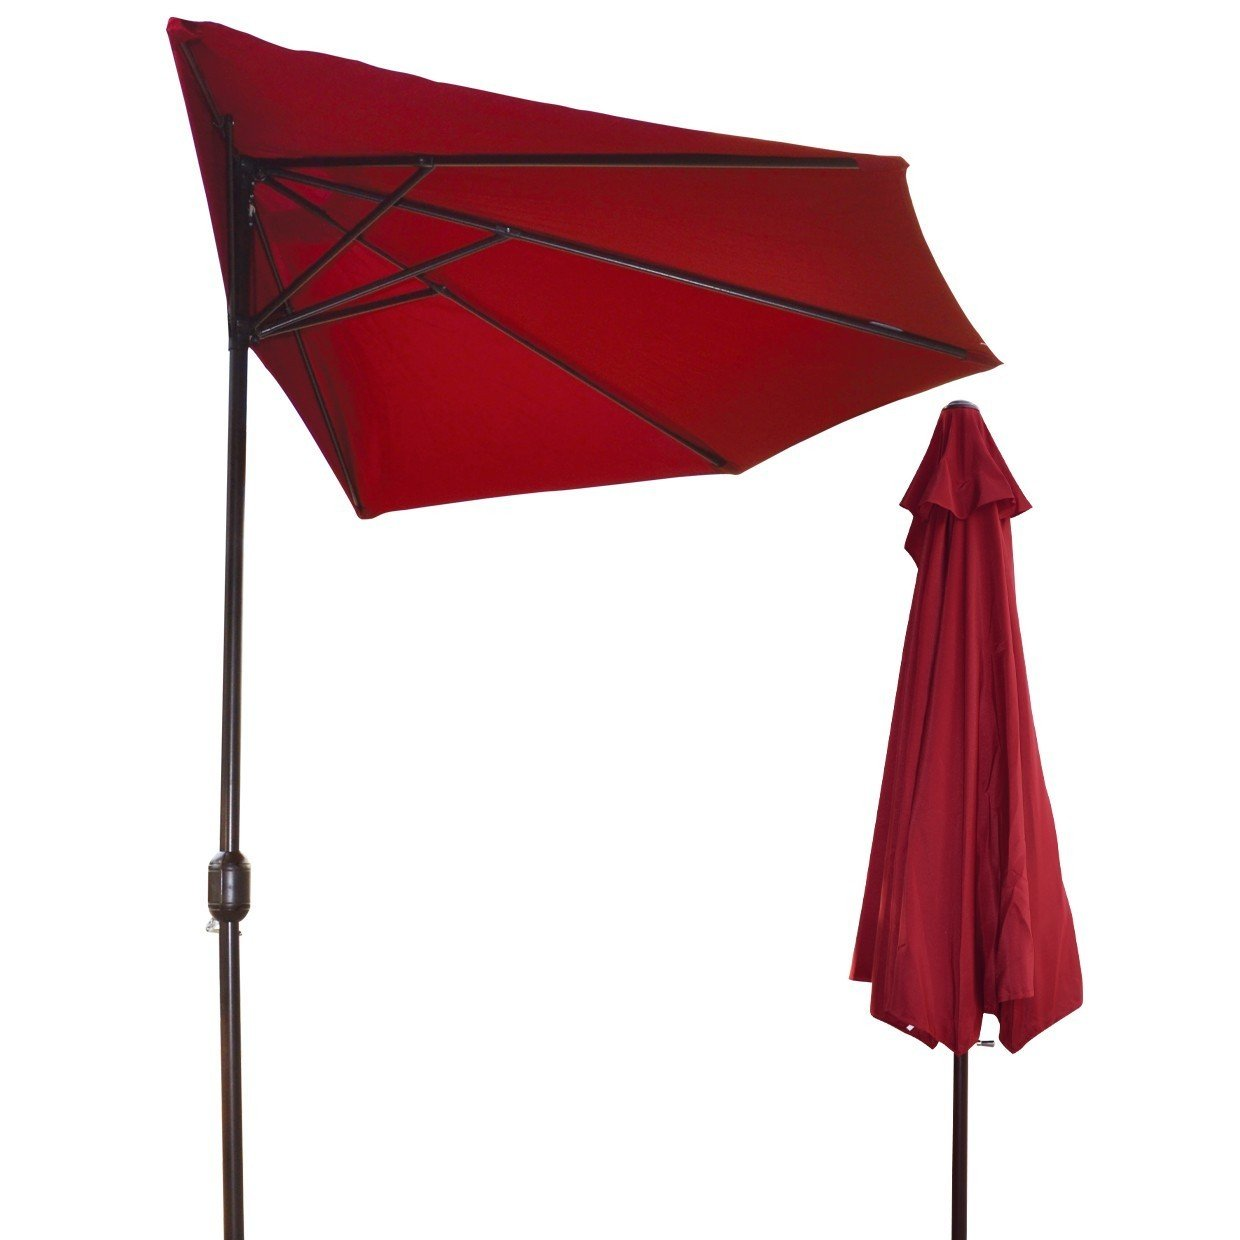 trademark umbrella innovations com ip walmart patio half